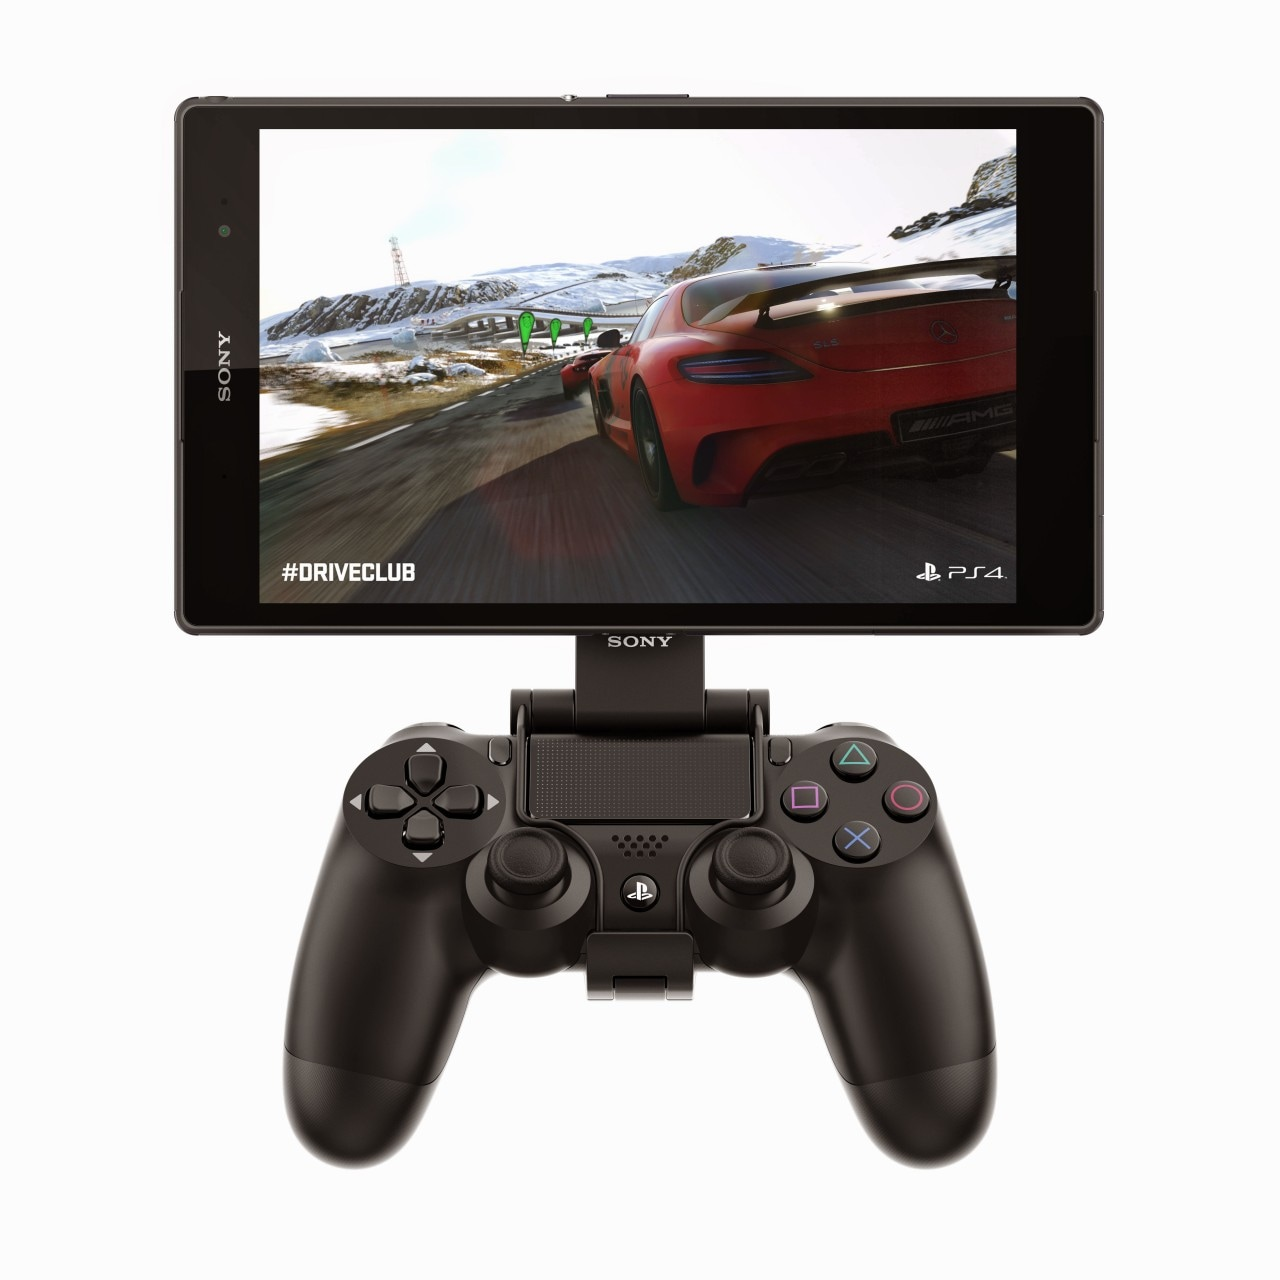 Sony Xperia Z3 Tablet Compact Render (12)